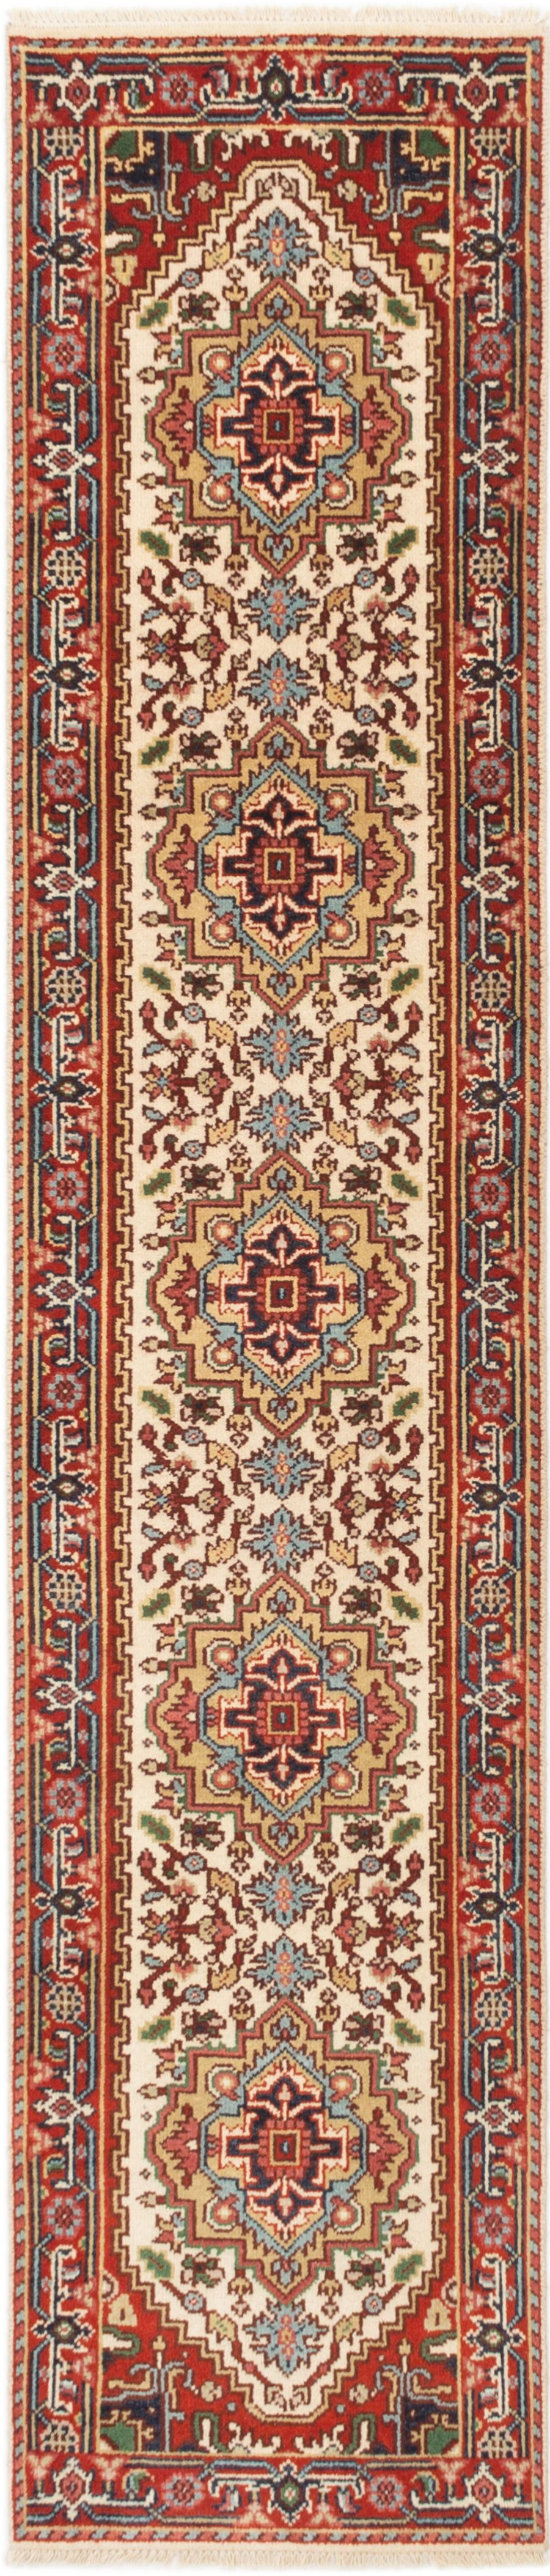 """Hand-knotted Serapi Heritage Cream Wool Rug 2'6"""" x 12'1""""  Size: 2'6"""" x 12'1"""""""